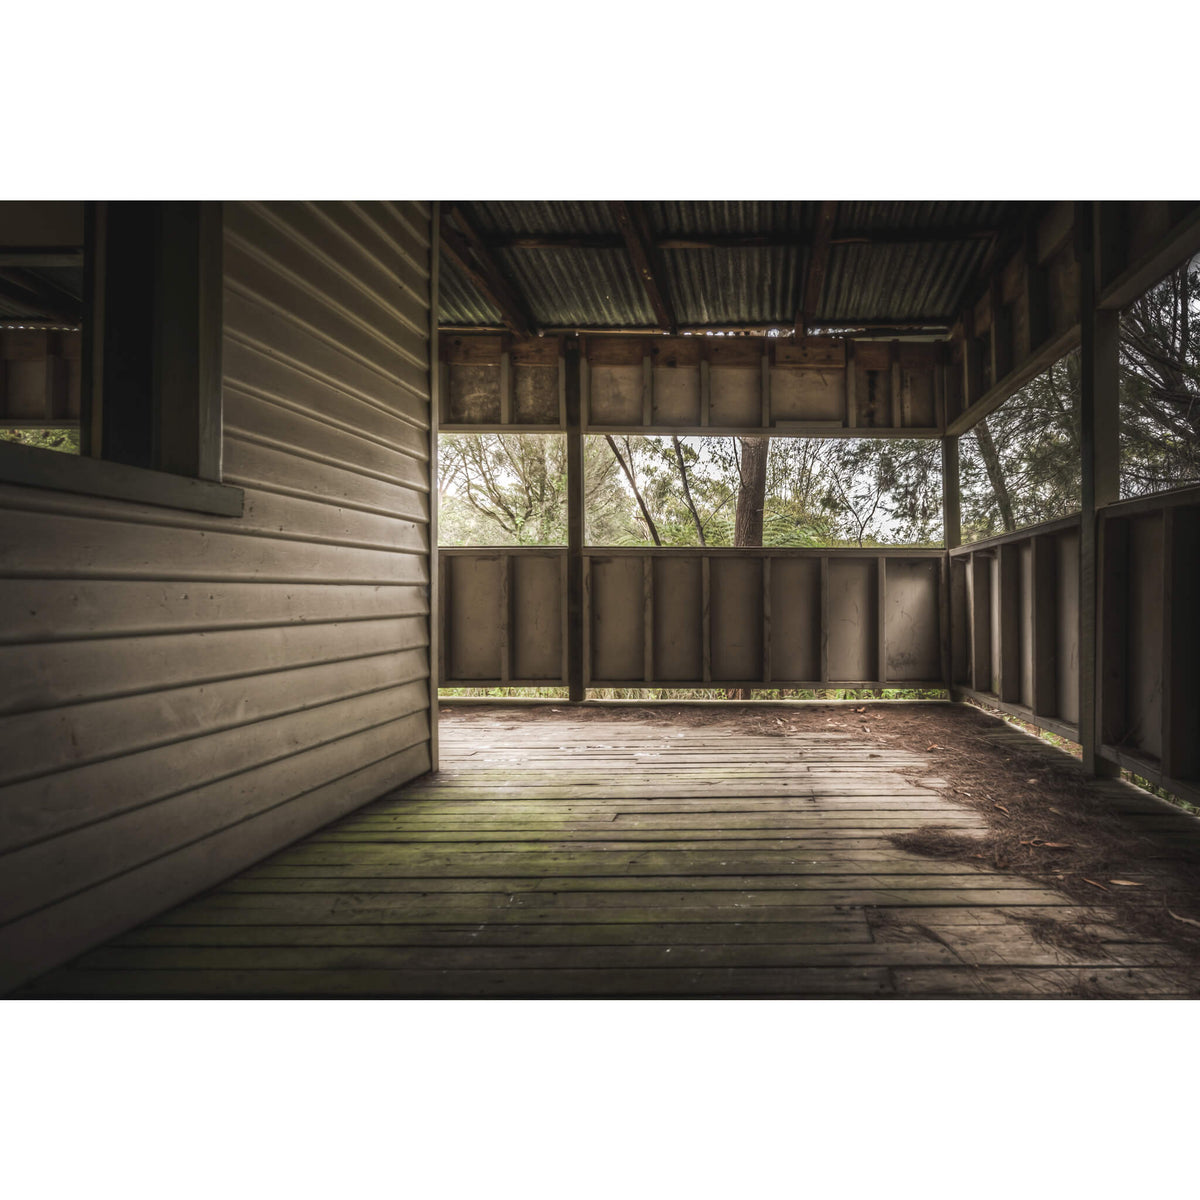 Train Station | Waratah Park Fine Art Print - Lost Collective Shop